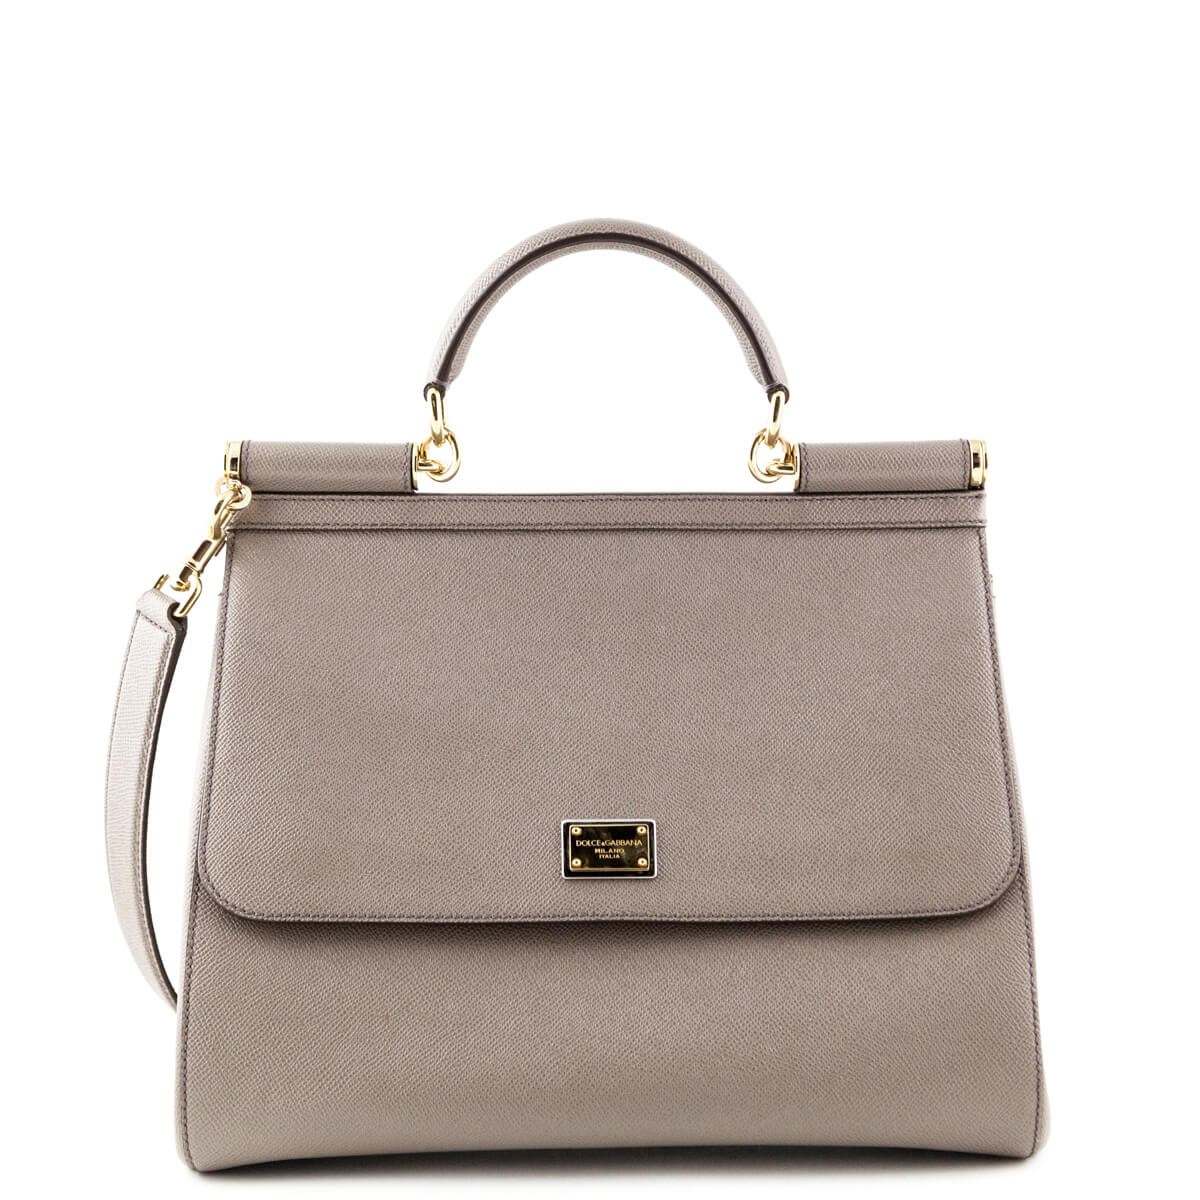 Dolce   Gabbana Taupe Saffiano Large Sicily - LOVE that BAG - Preowned  Authentic Designer Handbags ... eaafb1882bd8c